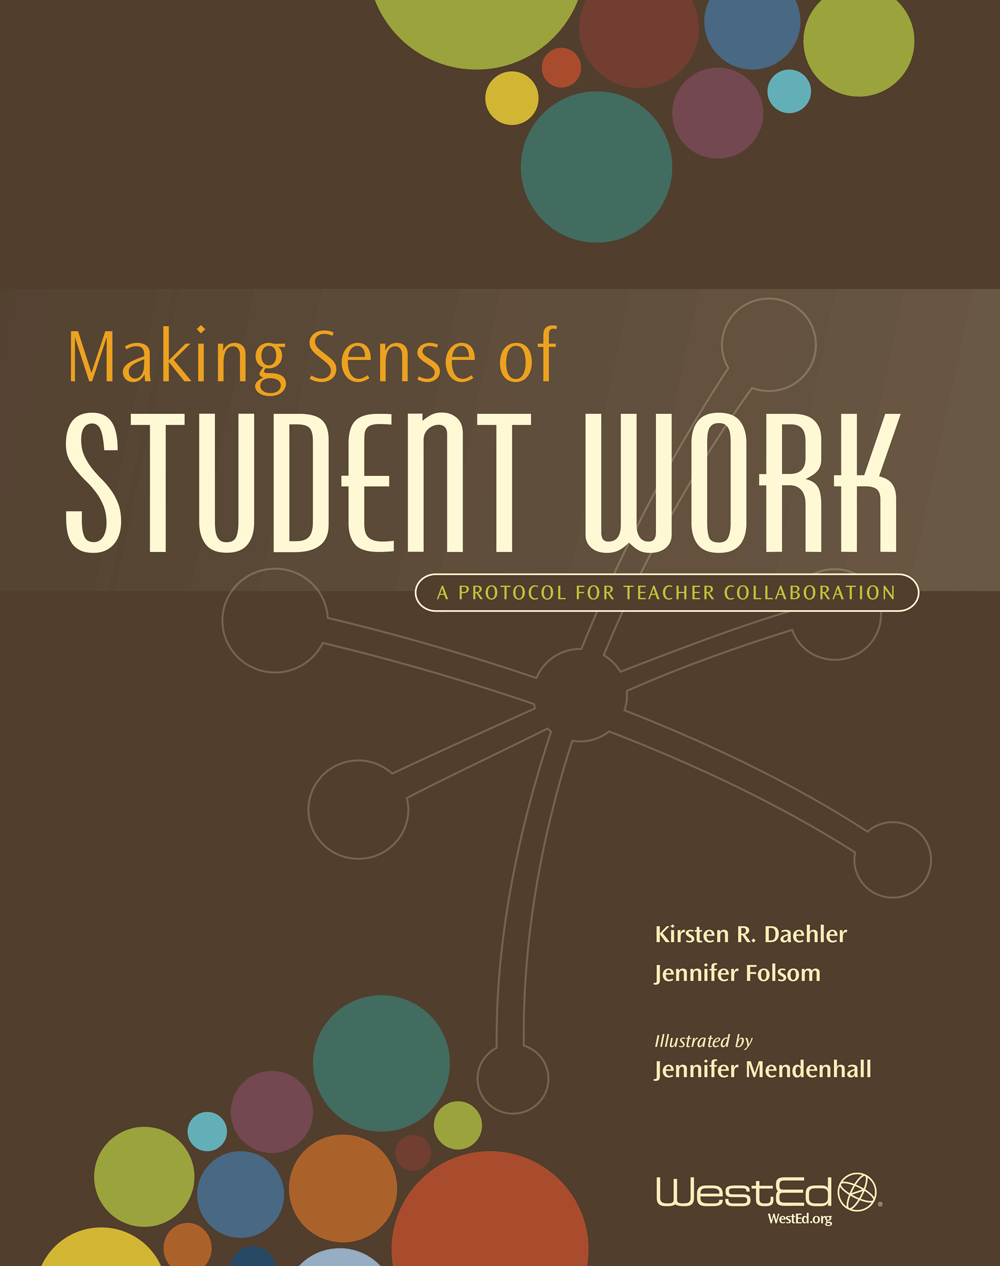 K 12 science education professional learning wested cover for making sense of student work a protocol for teacher collaboration fandeluxe Choice Image